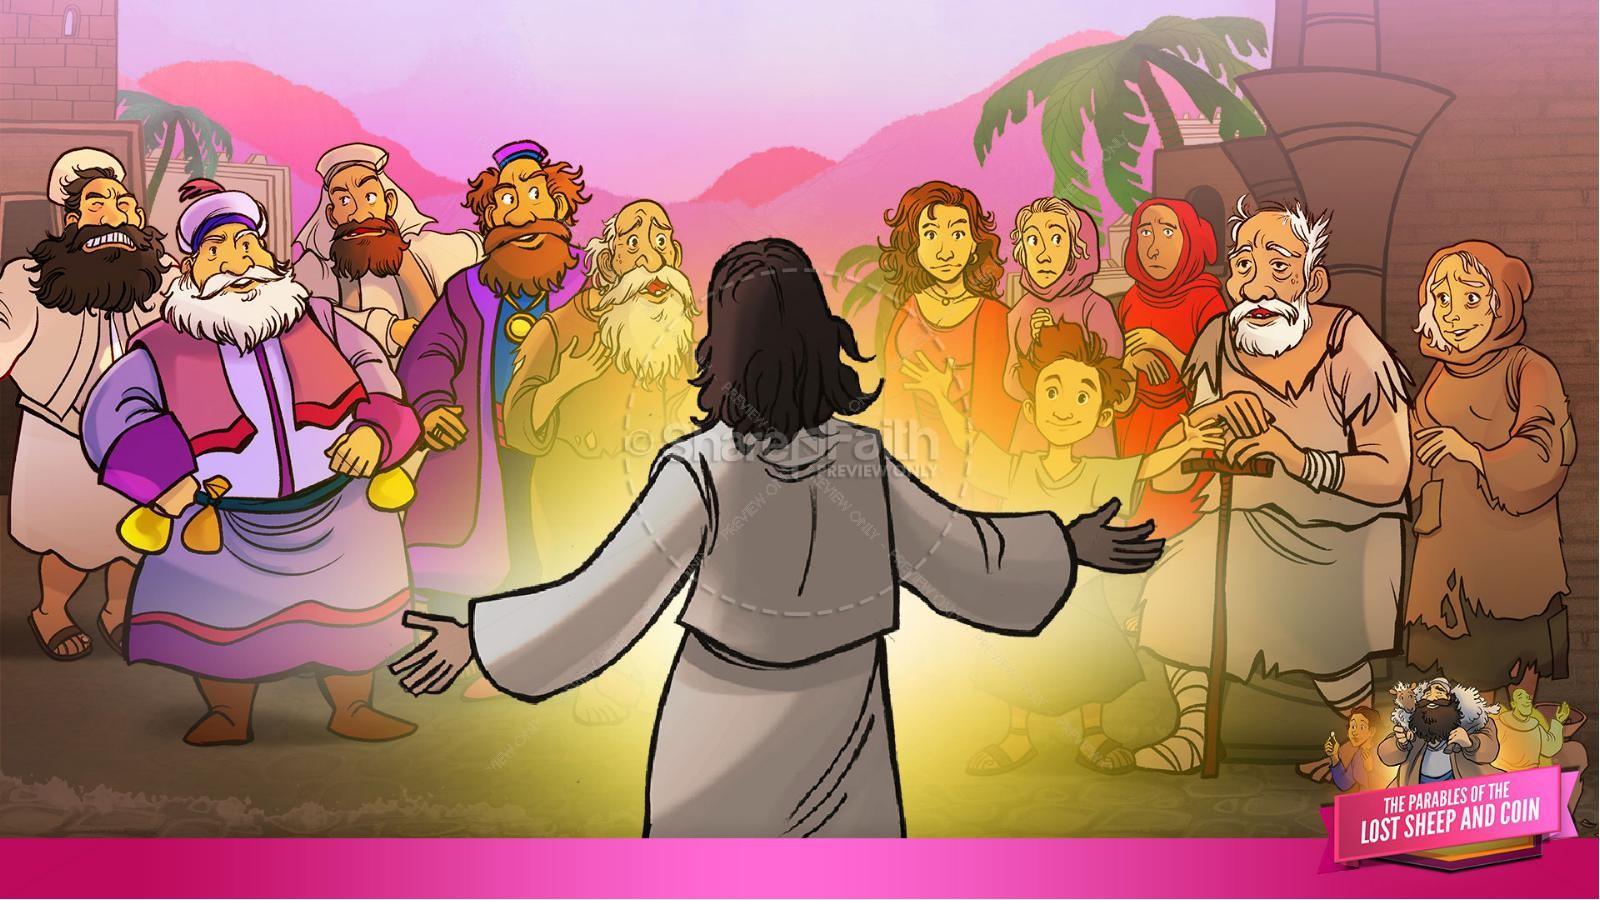 Luke 15 The Parables of the Lost Sheep and Coin Kids Bible Story   slide 10